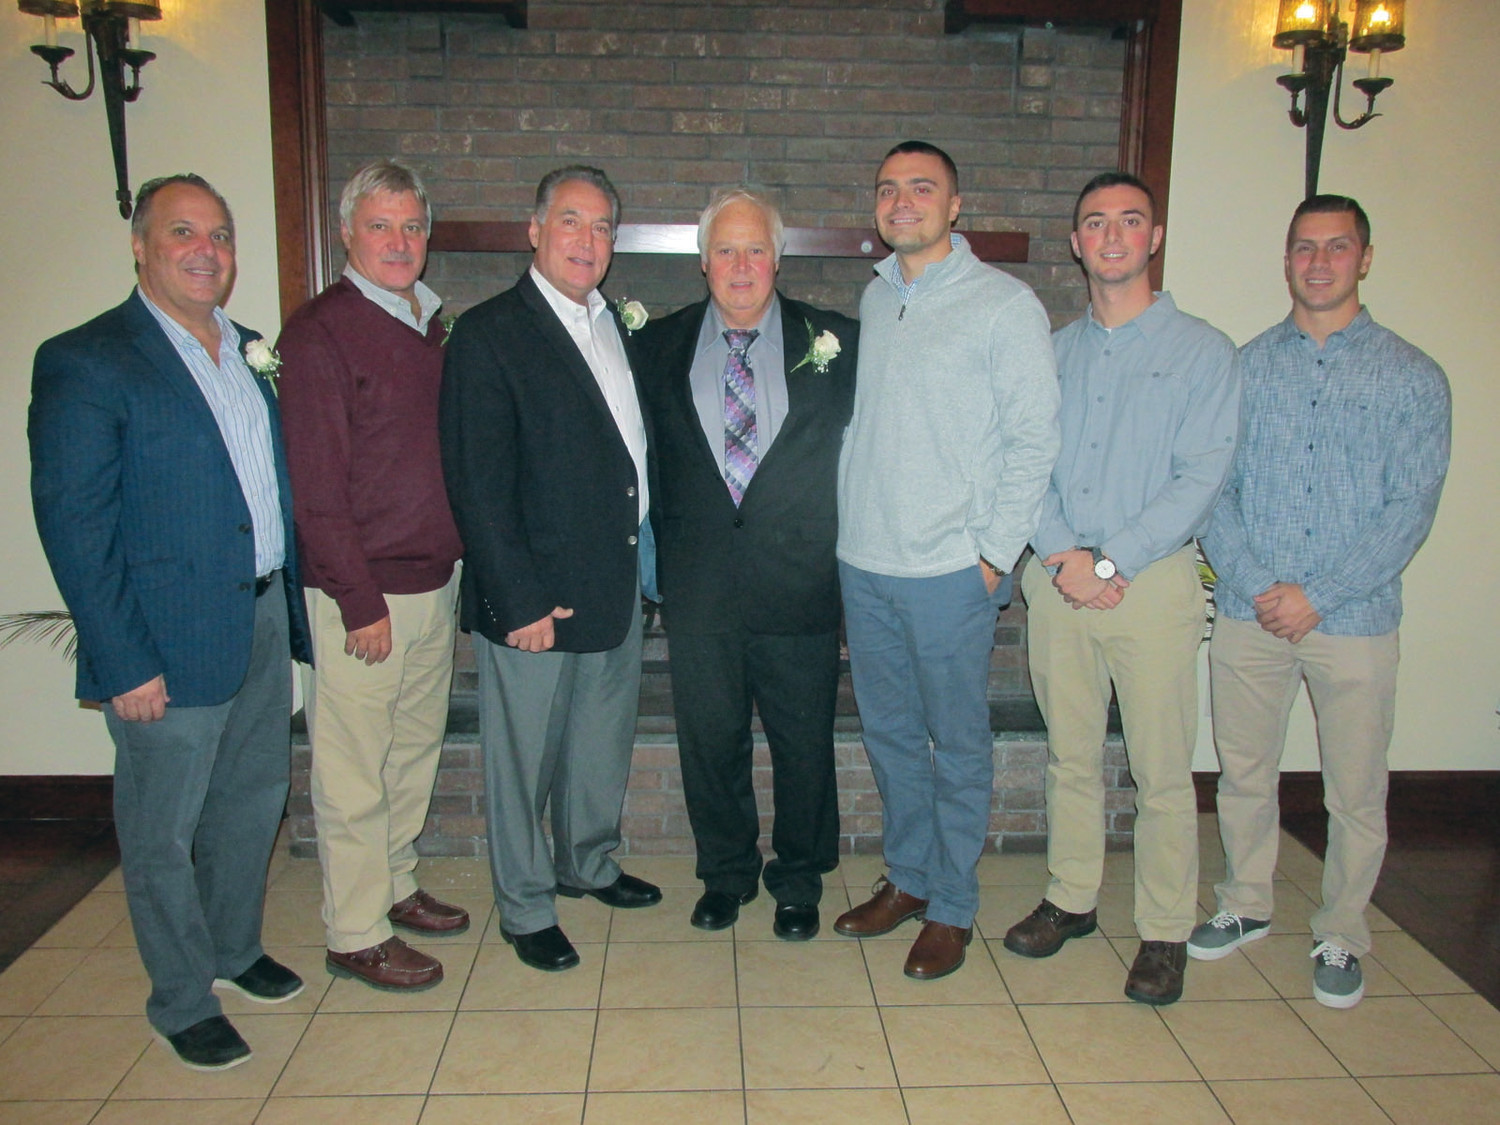 PRESTIGIOUS PANTHERS: These new JHS Hall of Famers were inducted during Sunday's ceremony under the player category. The group includes: Ryan Anderson, Gian Bianchi, Justin Caparco, Karl Jeschke, Chris Pistacchio, Robert Saccoccia, David      Santangelo and Robert Valletta. (Photo by Pete Fontaine)